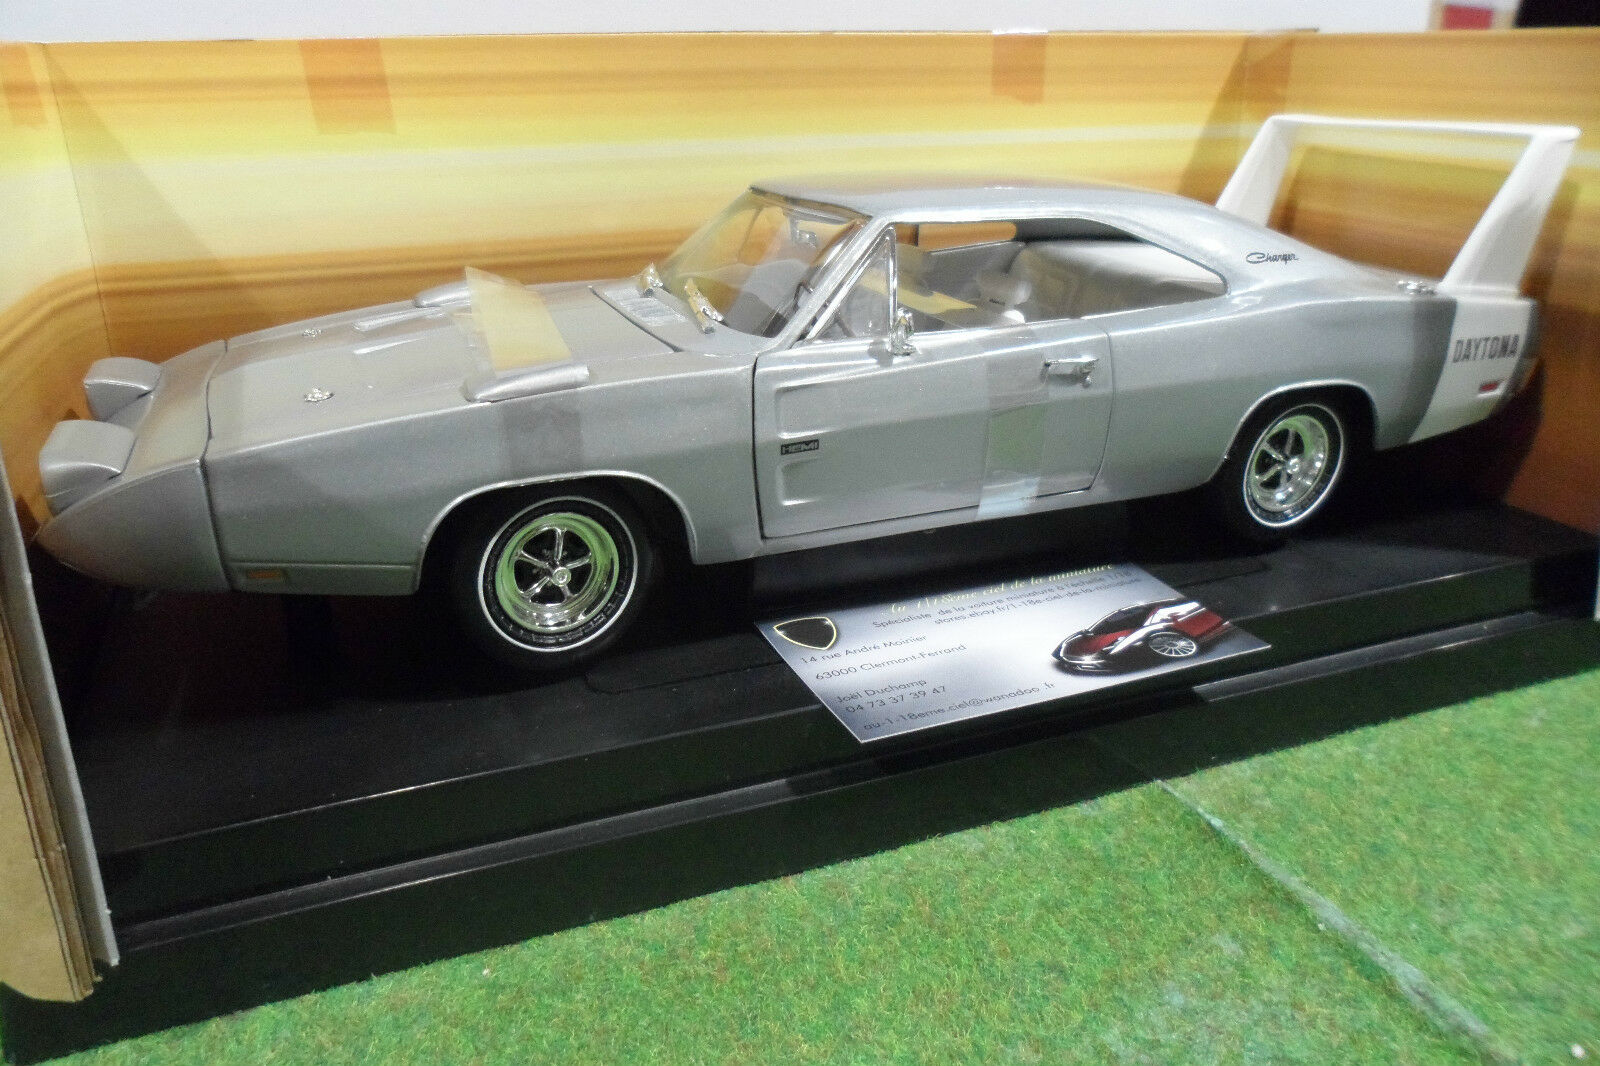 DODGE CHARGER DAYTONA 1969 au 1 18 AMERICAN MUSCLE ERTL 33012 voiture miniature